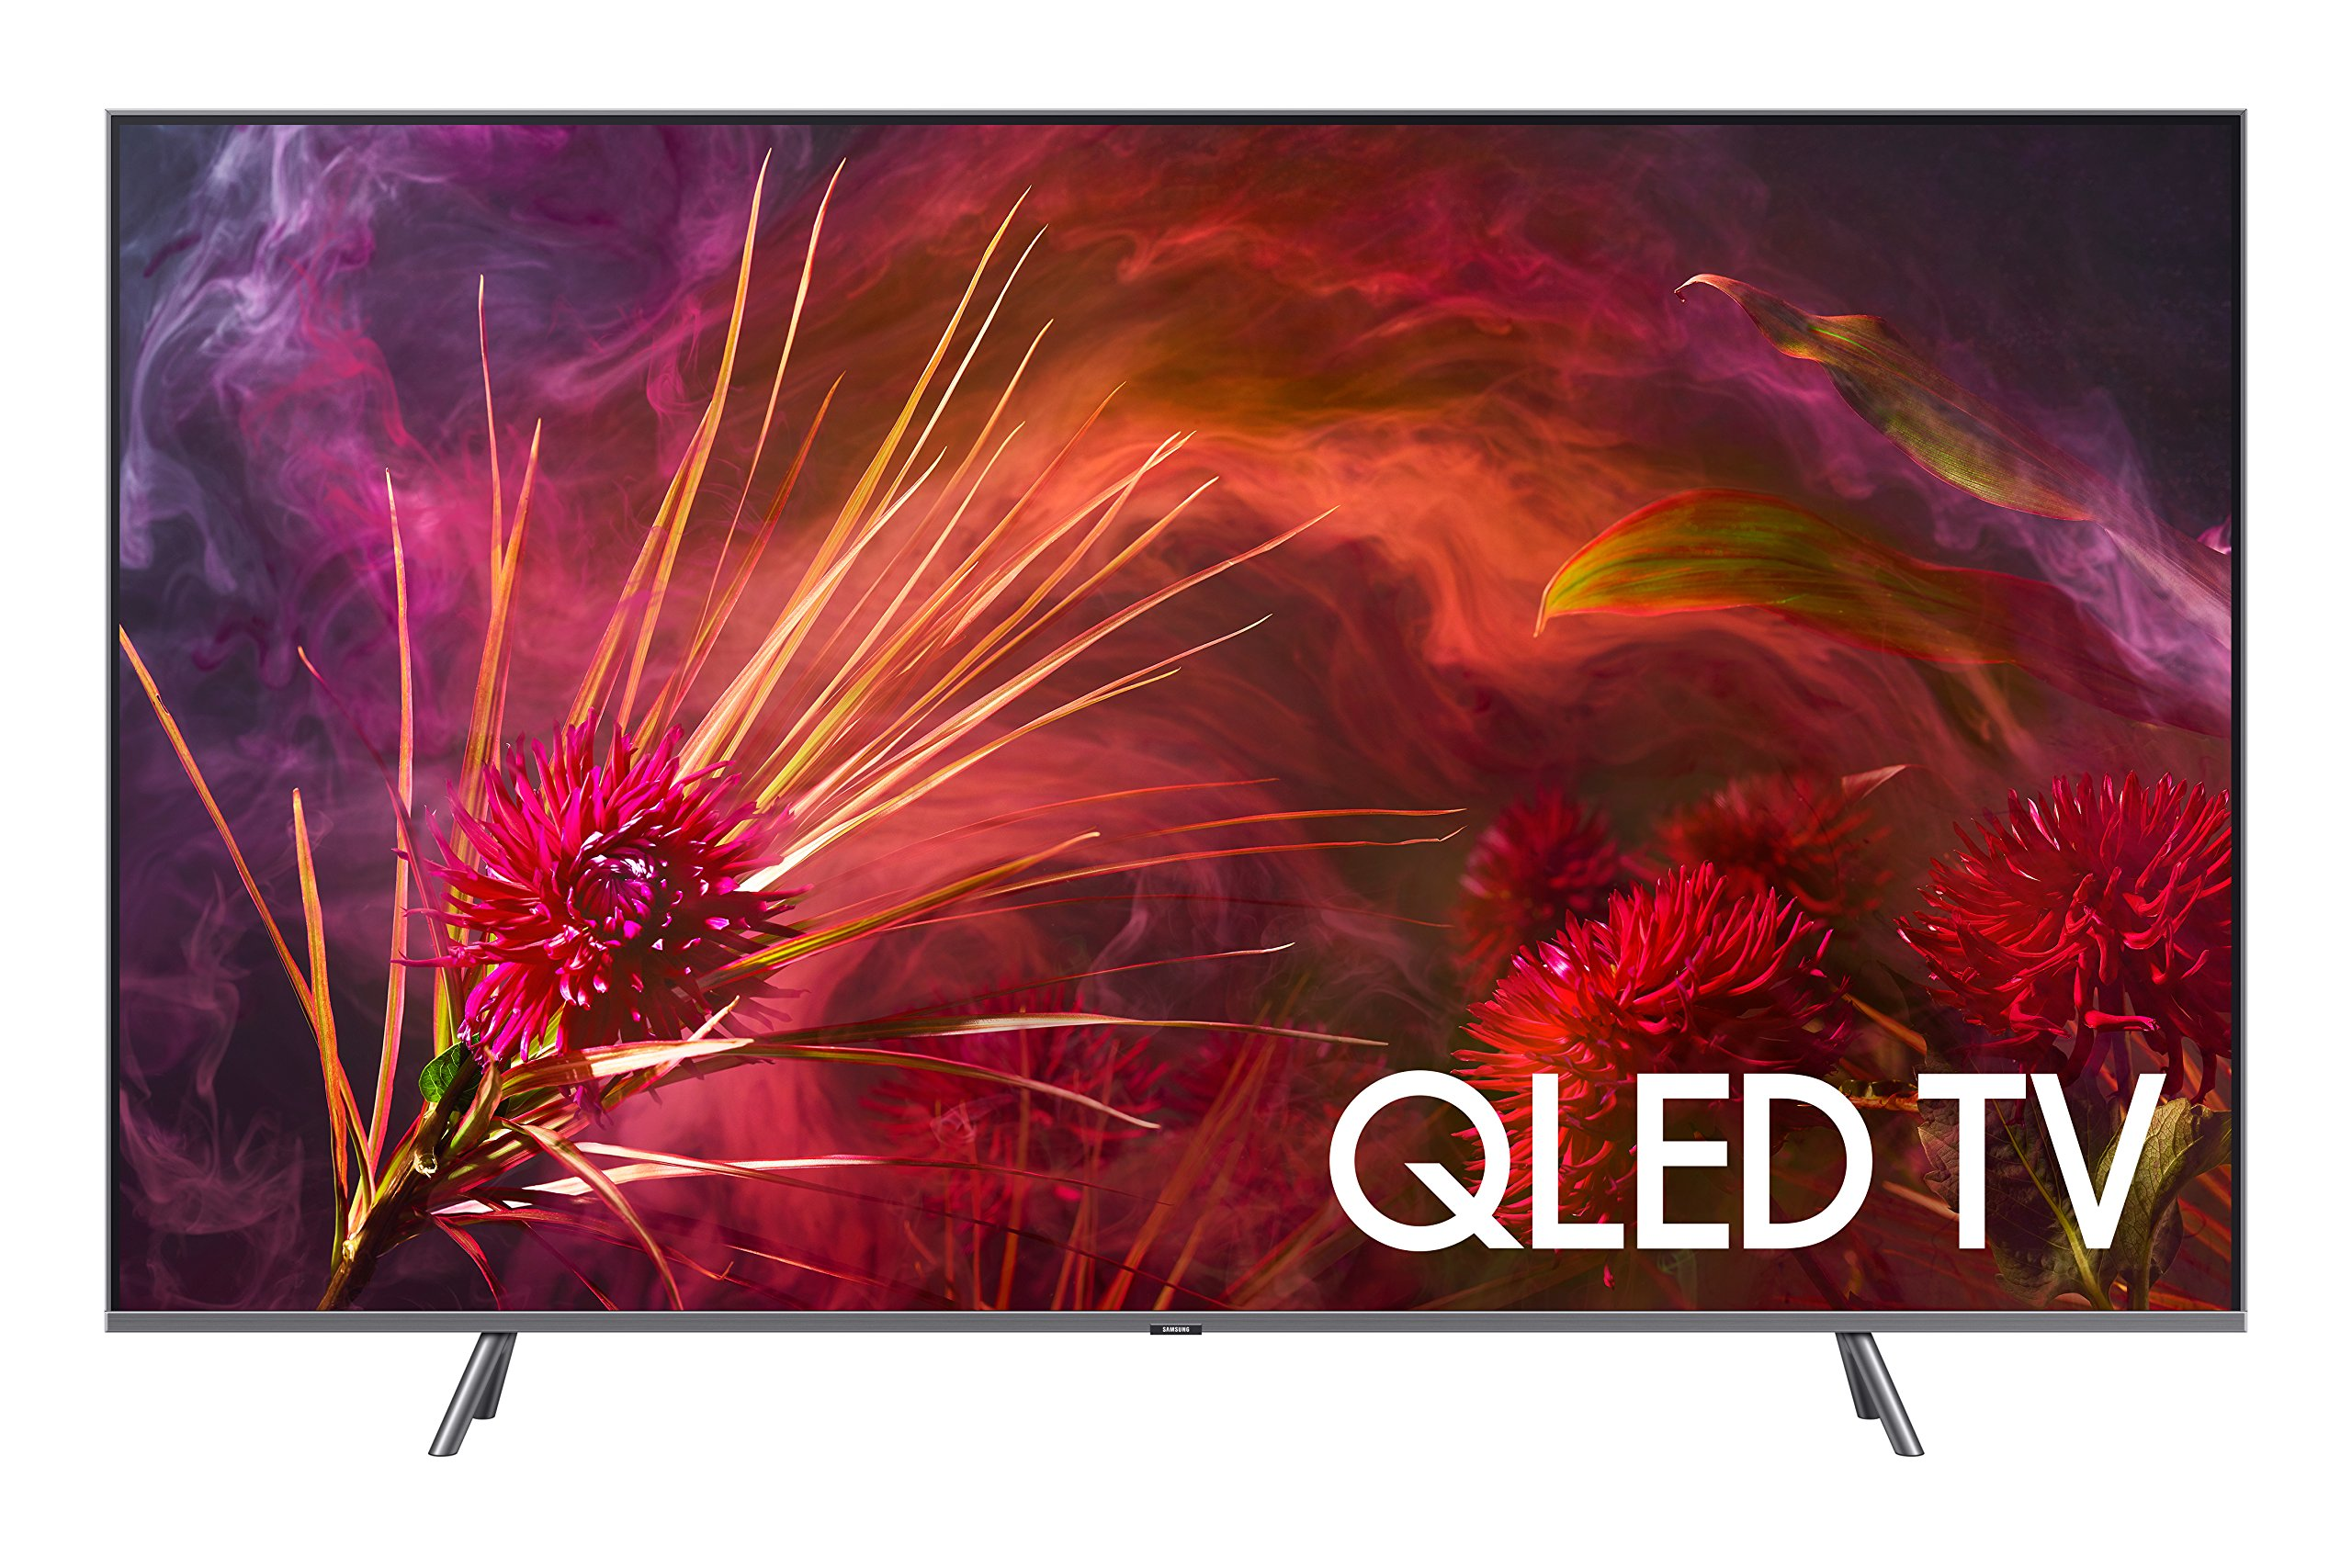 Samsung QLED 4K UHD 8 Series Smart TV 2018 - 91nyStQ985L - Samsung QLED 4K UHD 8 Series Smart TV 2018